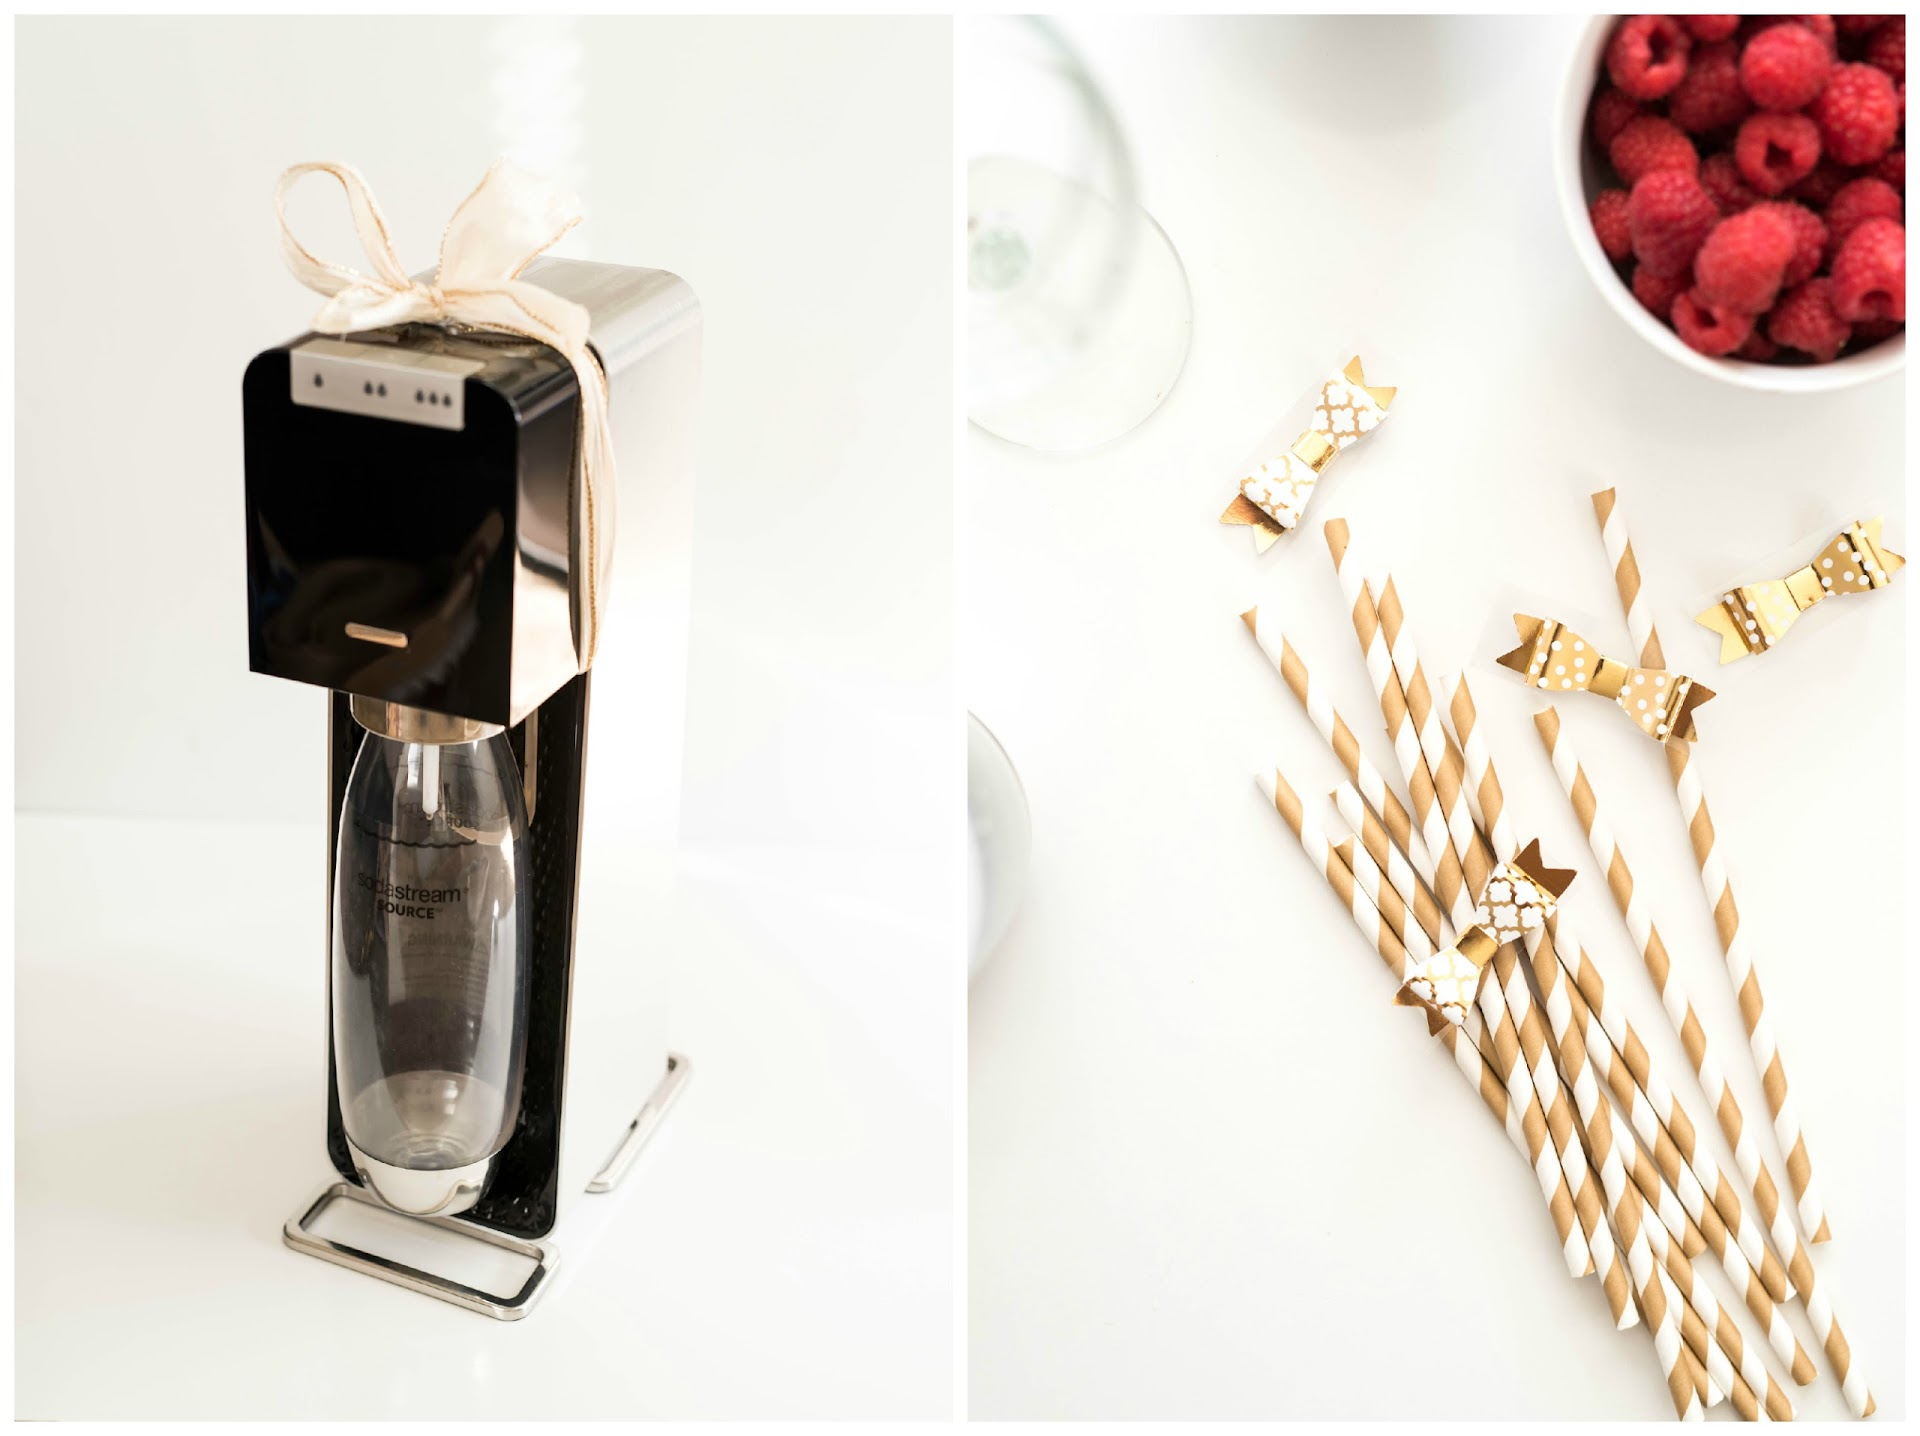 sodastream power reviews, sparkling water maker, club soda, christmas gift for anyone idea, holiday gift guide, healthy, new year's resolutions, san francisco bay are food blogger